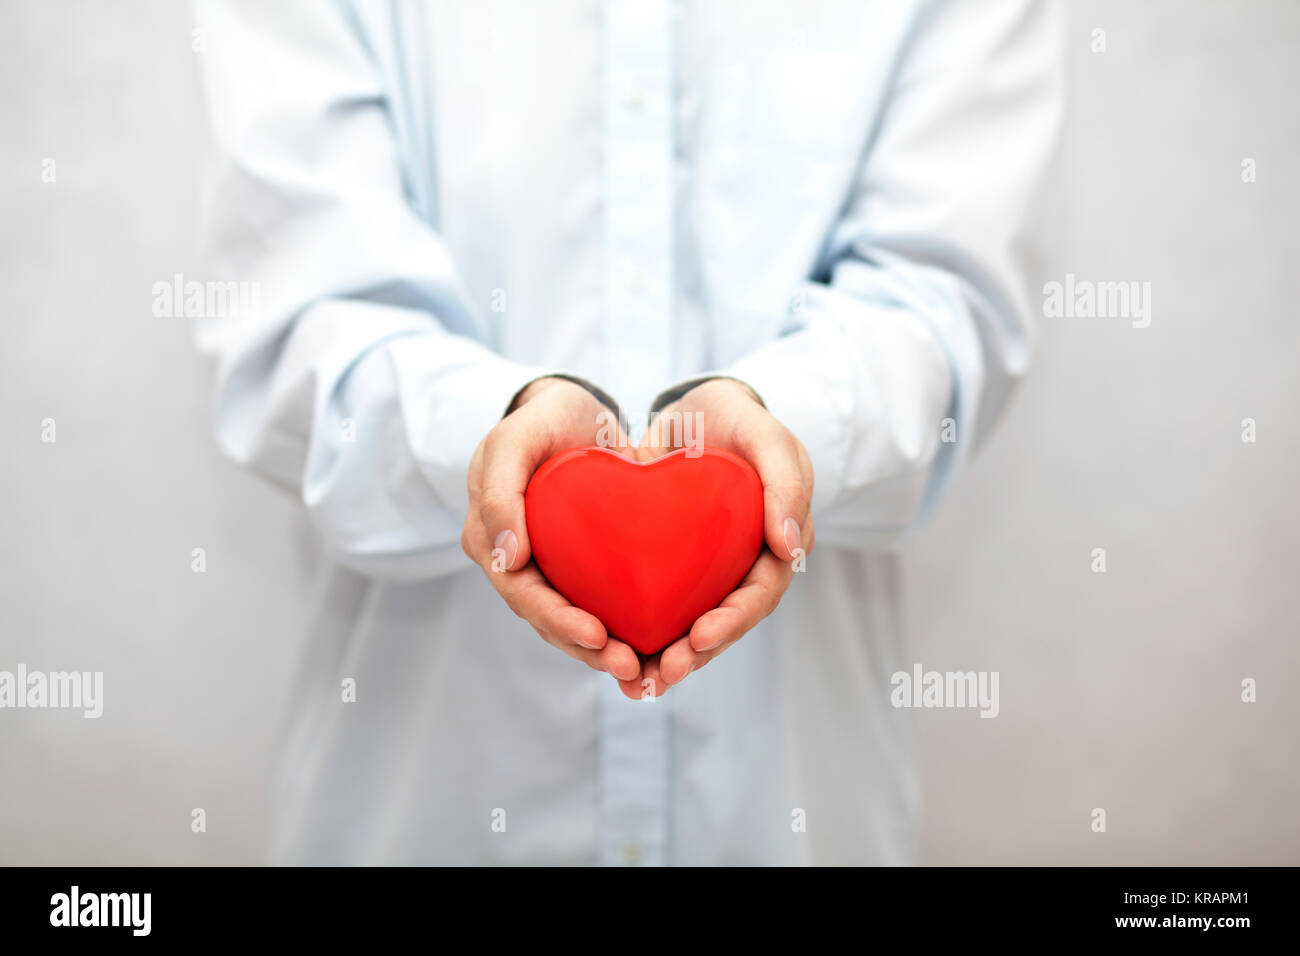 Red heart in hands - Stock Photo